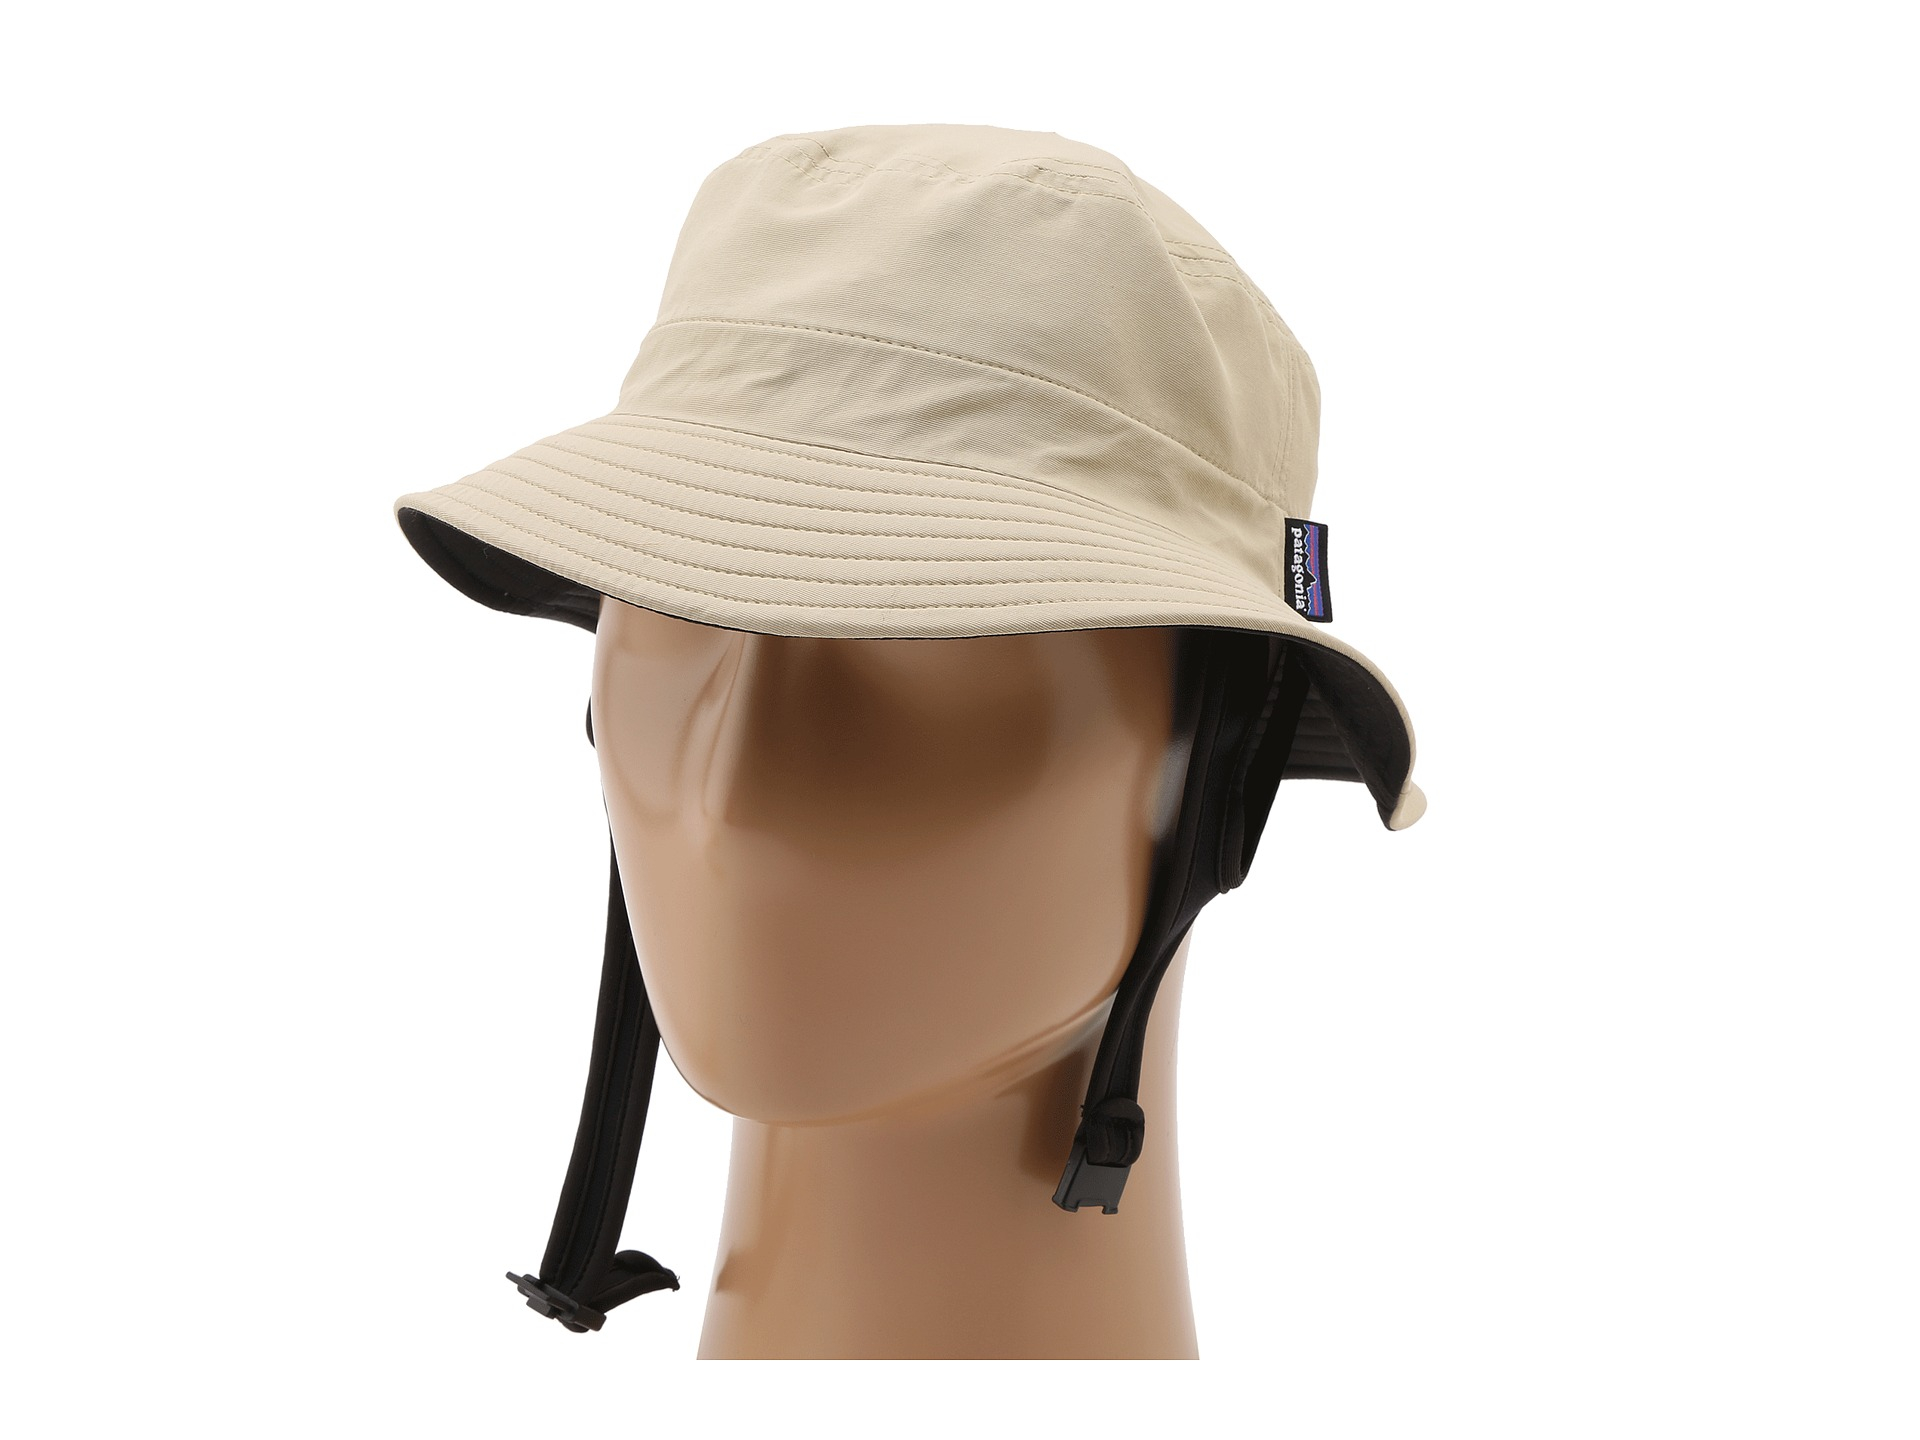 Lyst - Patagonia Surf Brim in Natural 06182dbd2b2